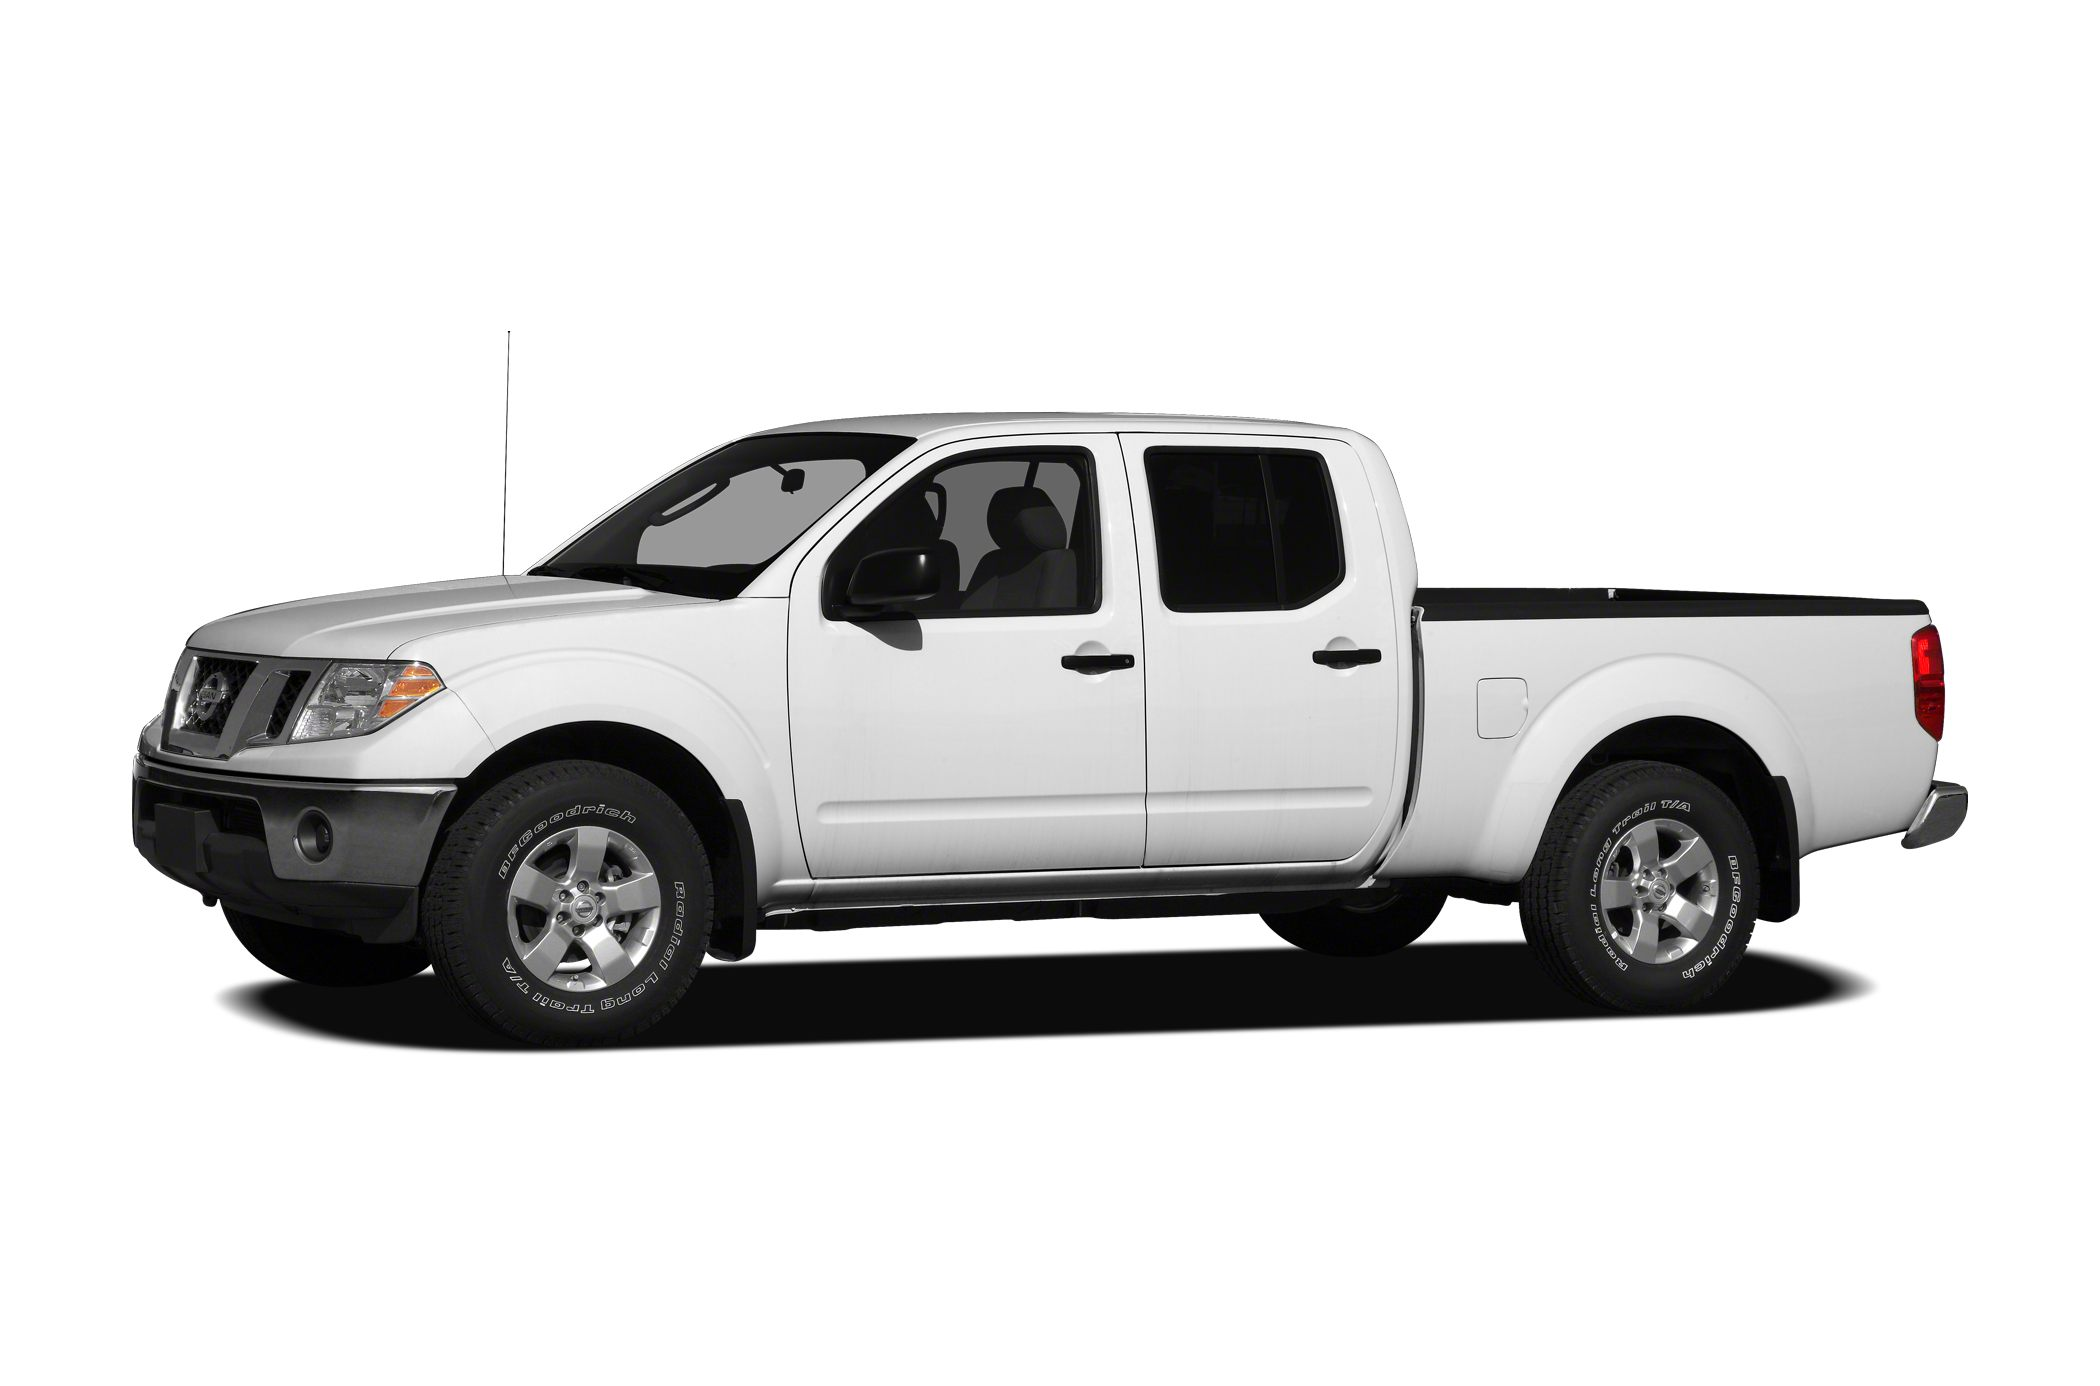 2012 Nissan Frontier S Crew Cab Pickup for sale in Butler for $22,995 with 43,970 miles.